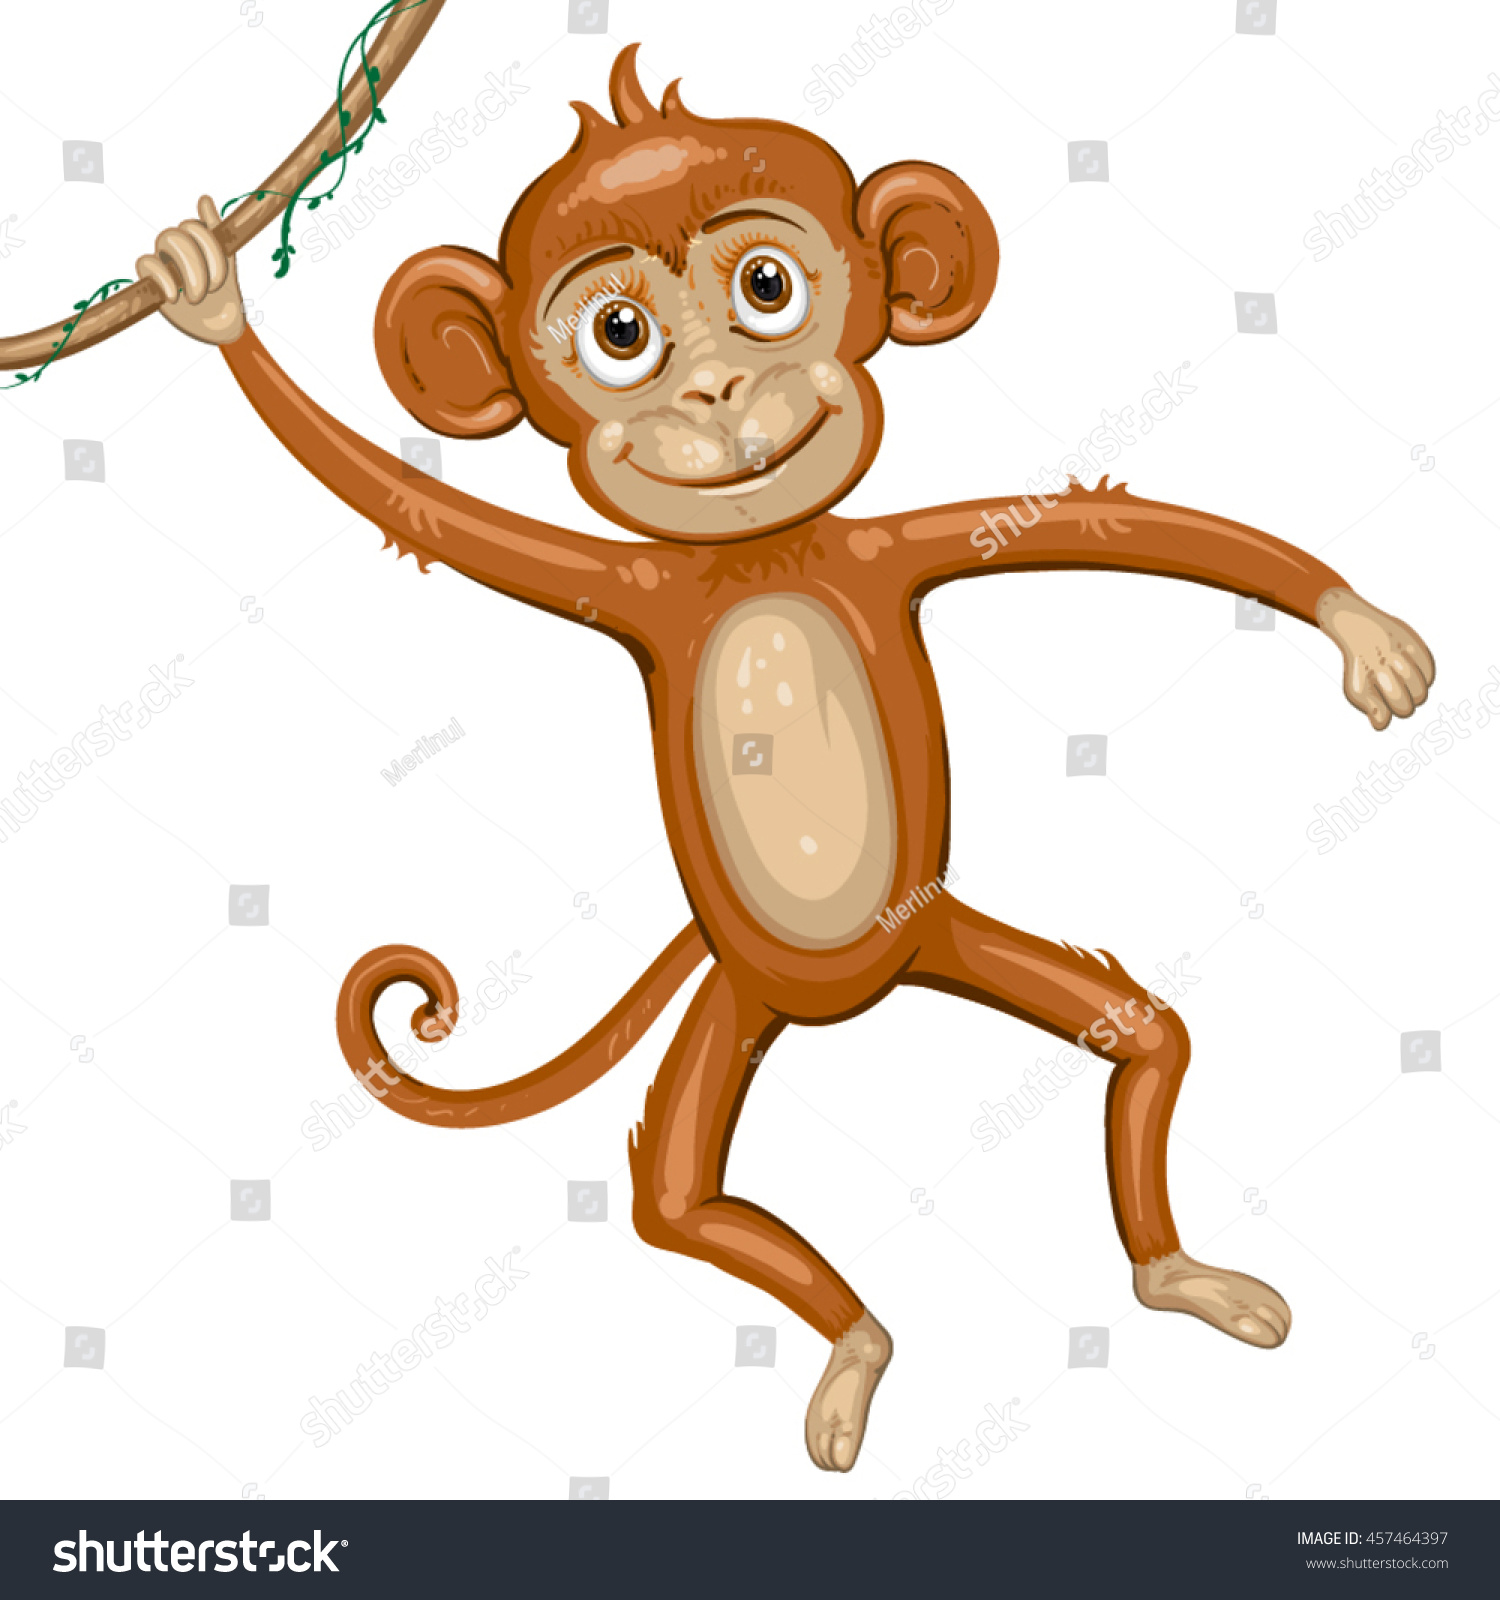 Images for simple cartoon monkey hanging - Cartoon Monkey Hanging In Tree